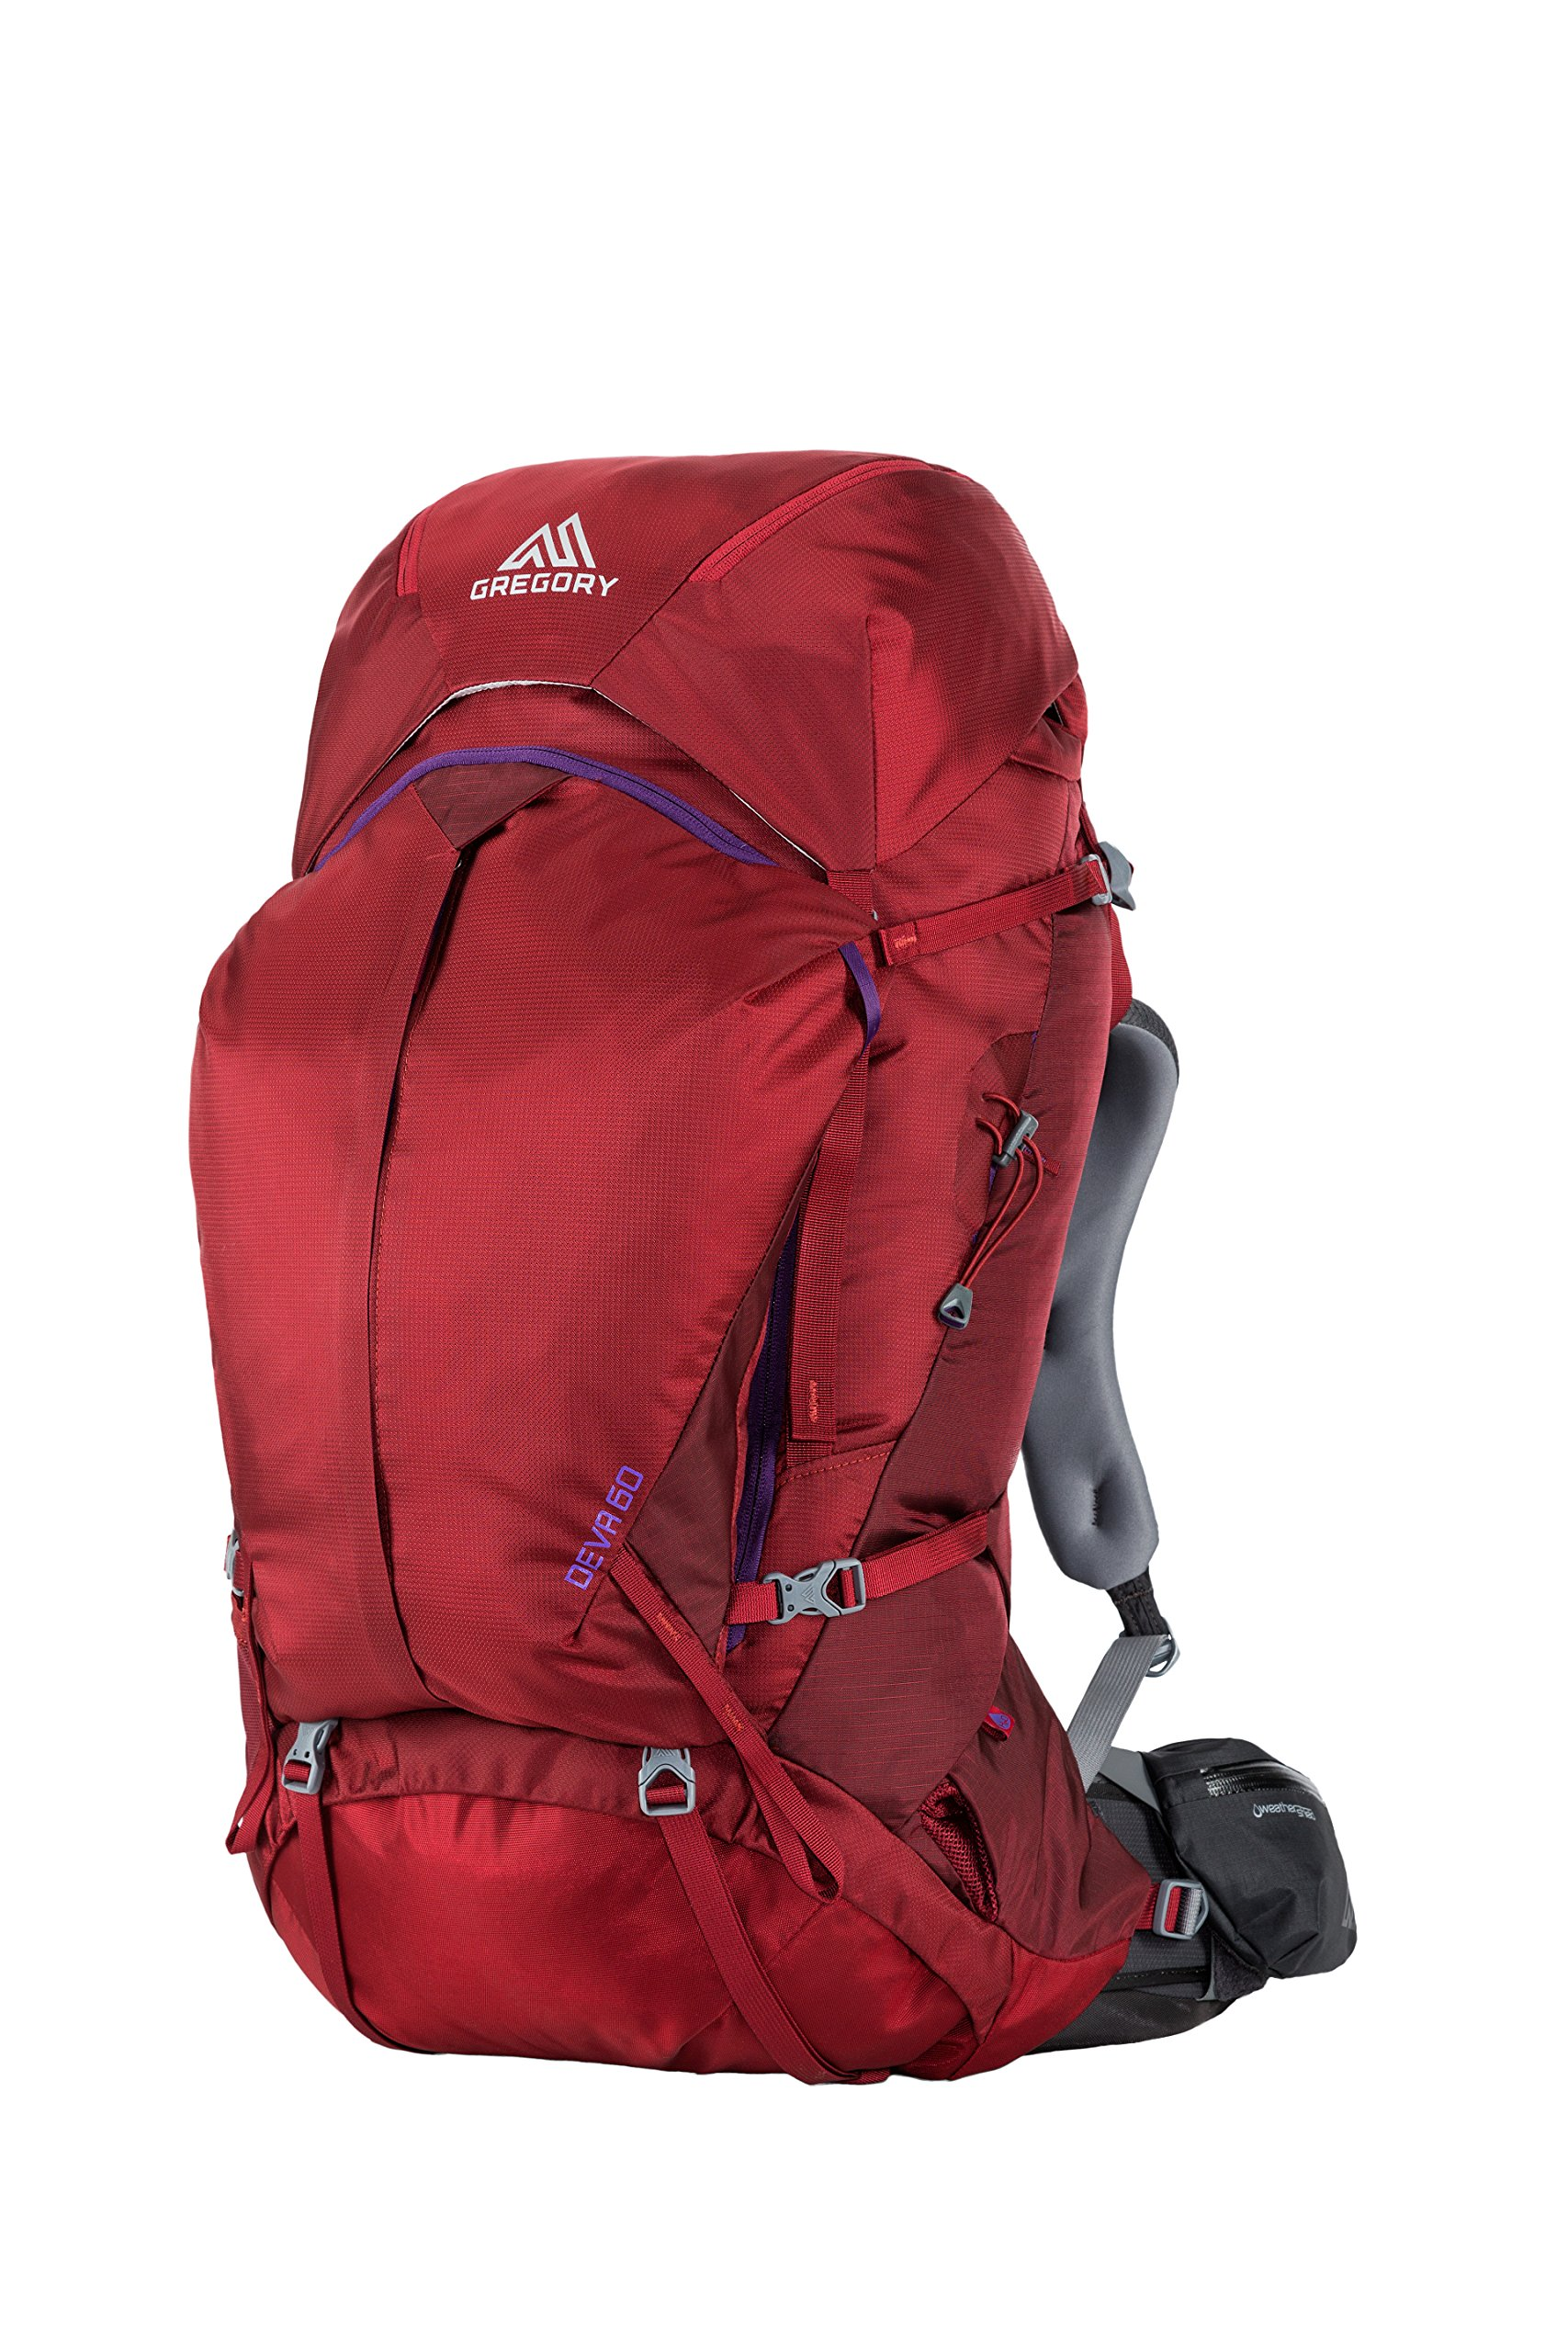 Gregory Mountain Products Deva 60 Liter Women's Backpack, Ruby Red, Medium